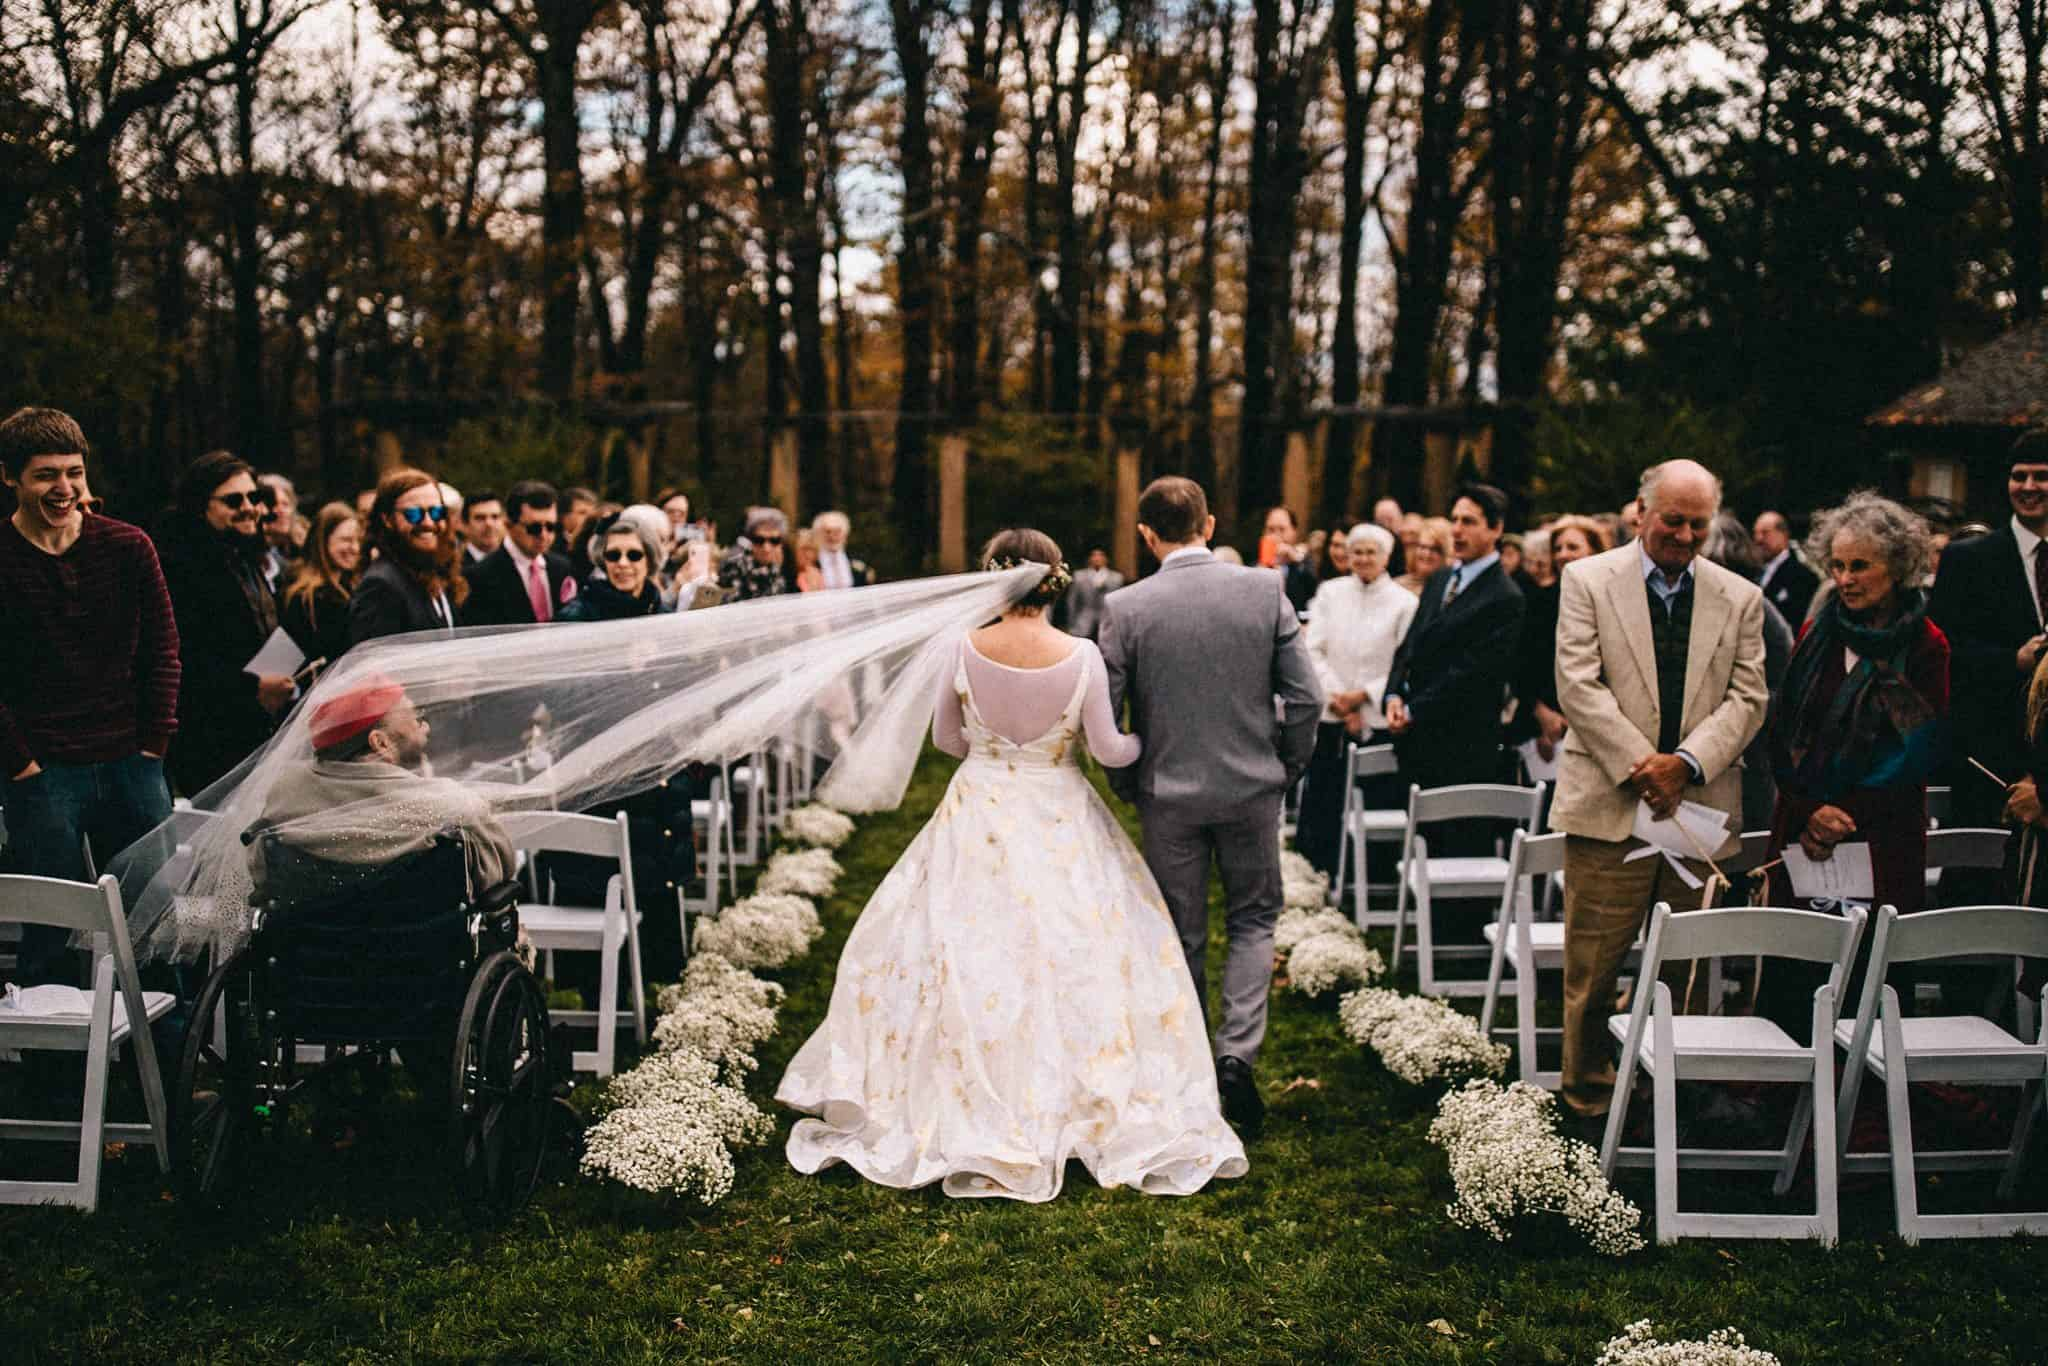 Wedding Moments Captured That Will Leave You Speechless